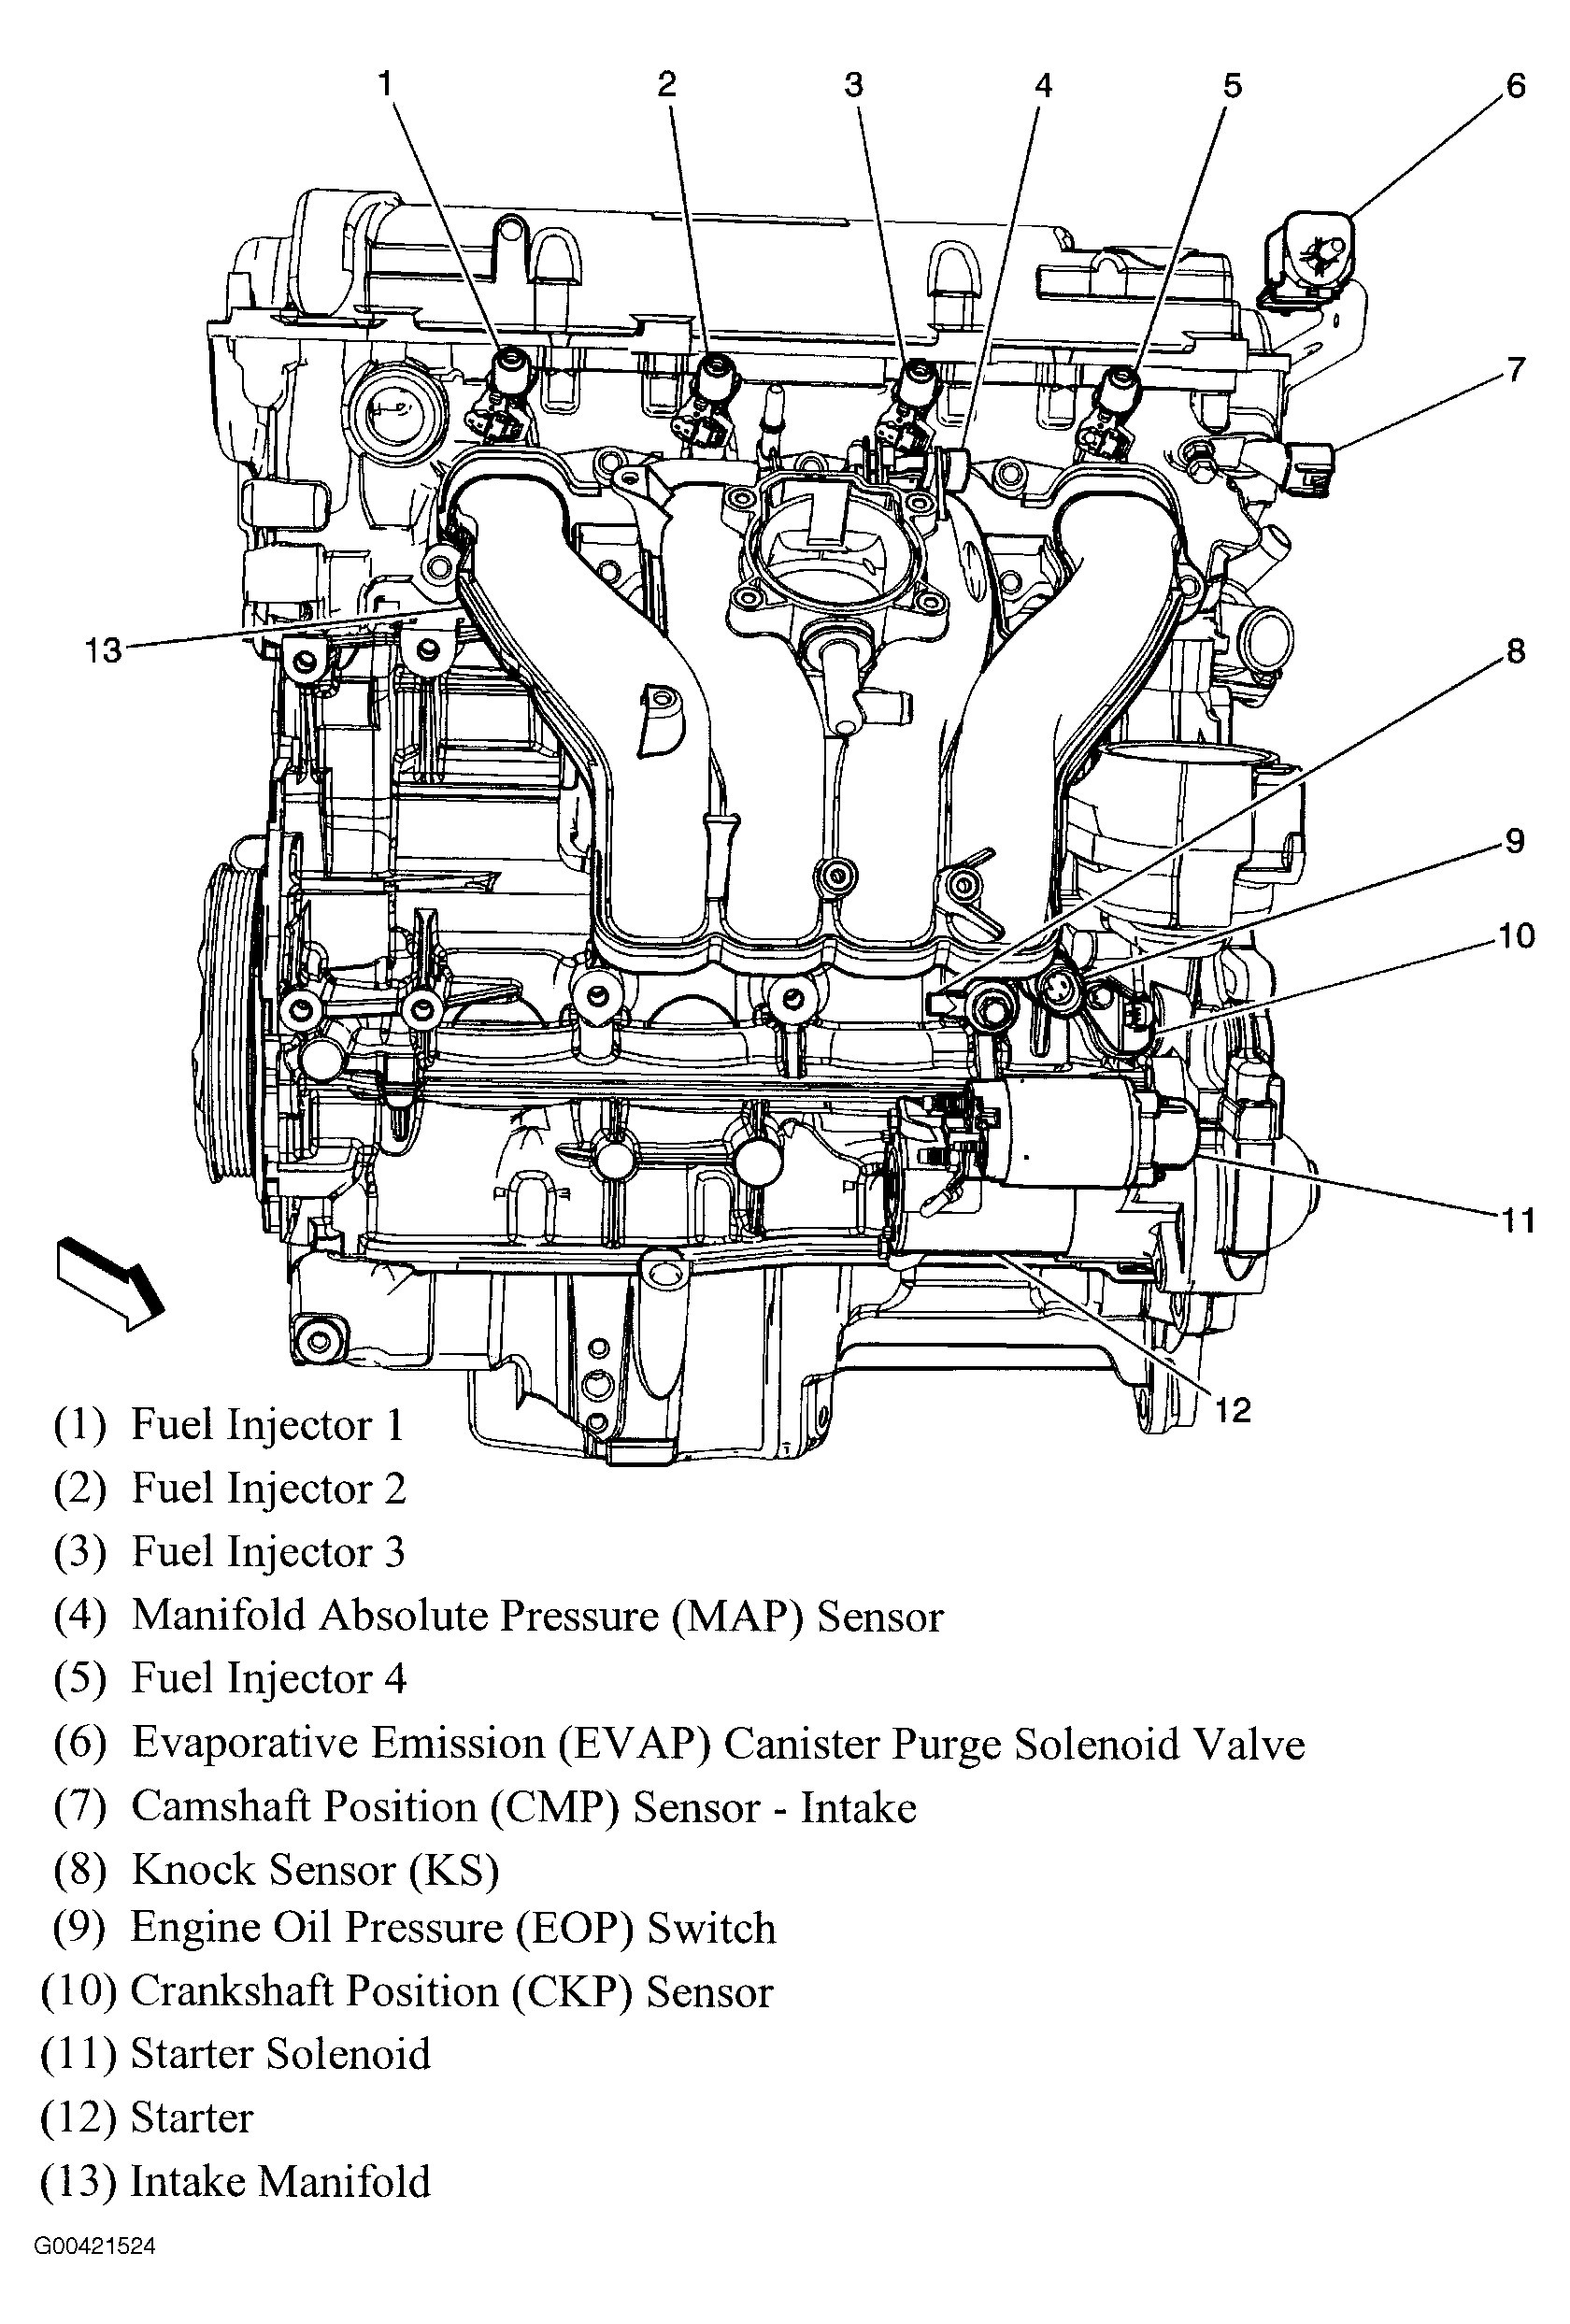 hight resolution of chevy 3 4l engine diagram wiring diagram page 3 4l chevy engine diagram